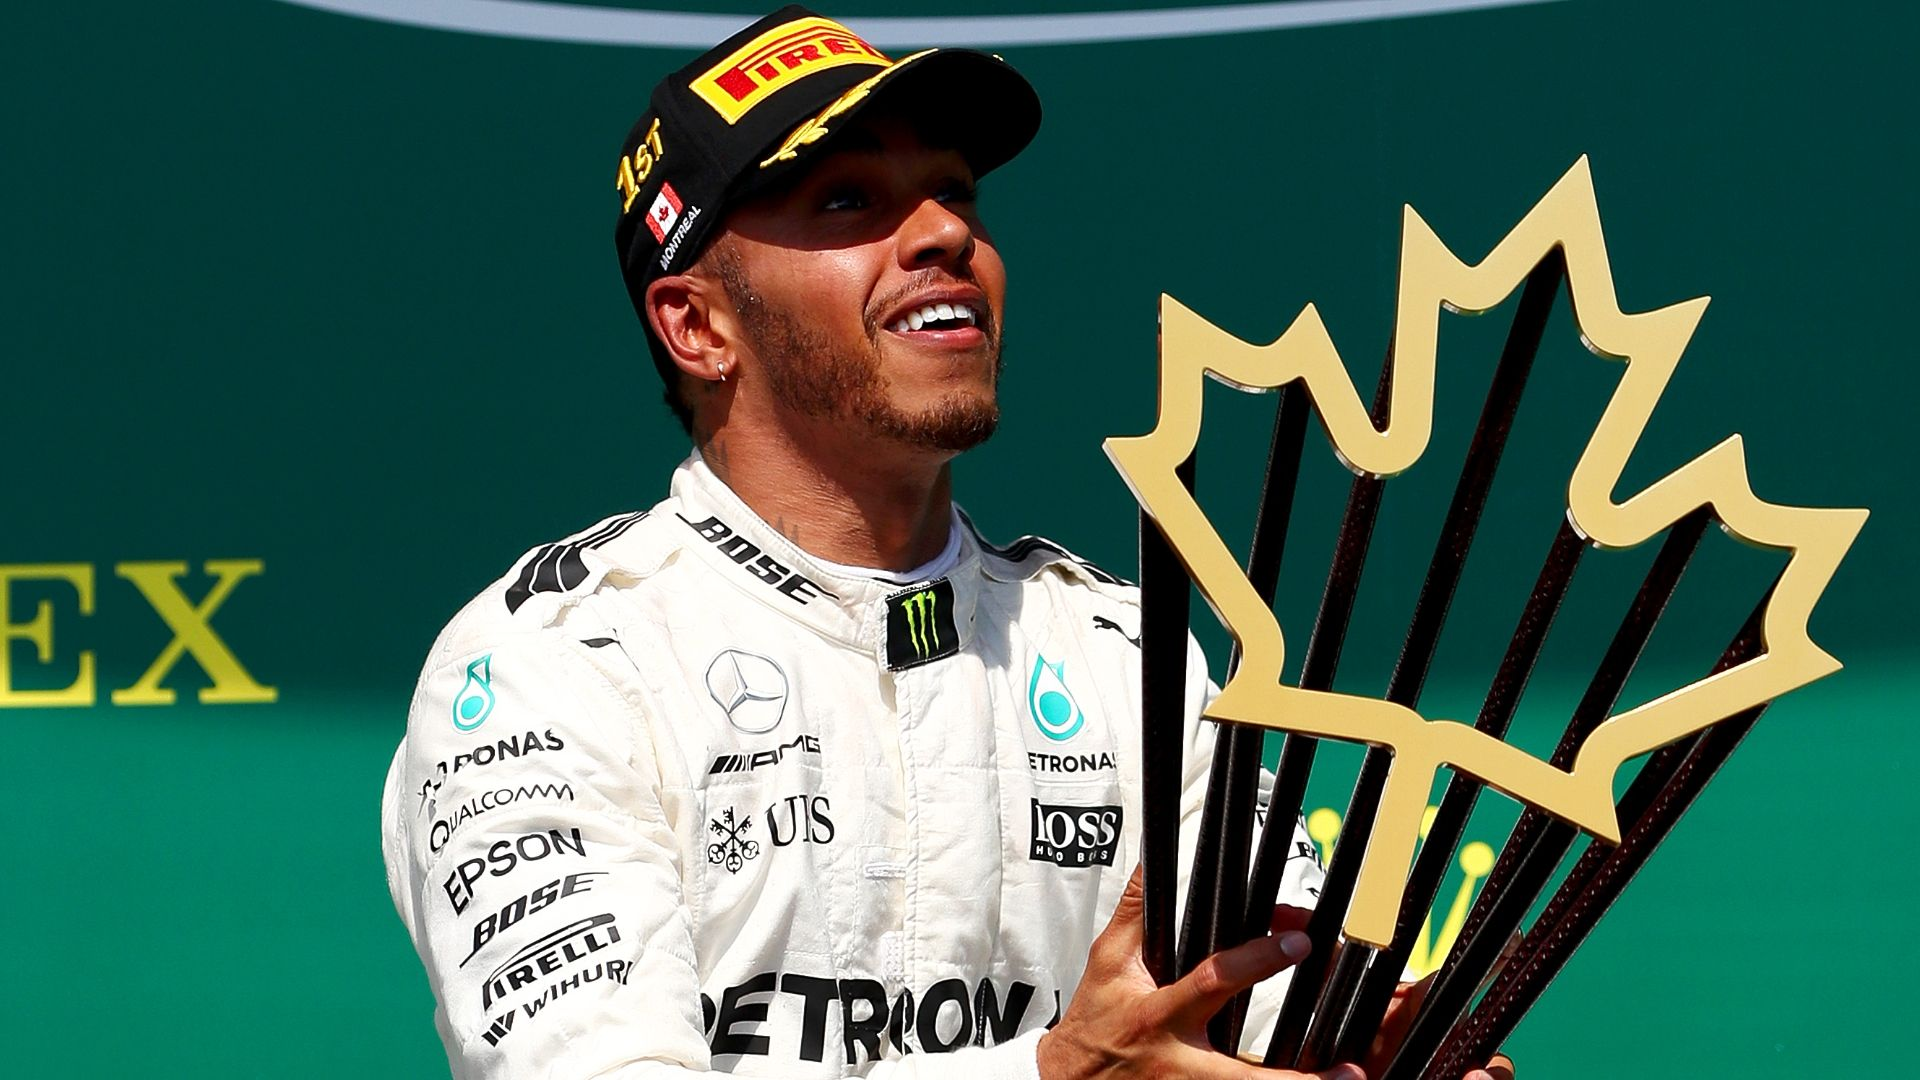 Can Hamilton make it a lucky seventh win in Montreal?